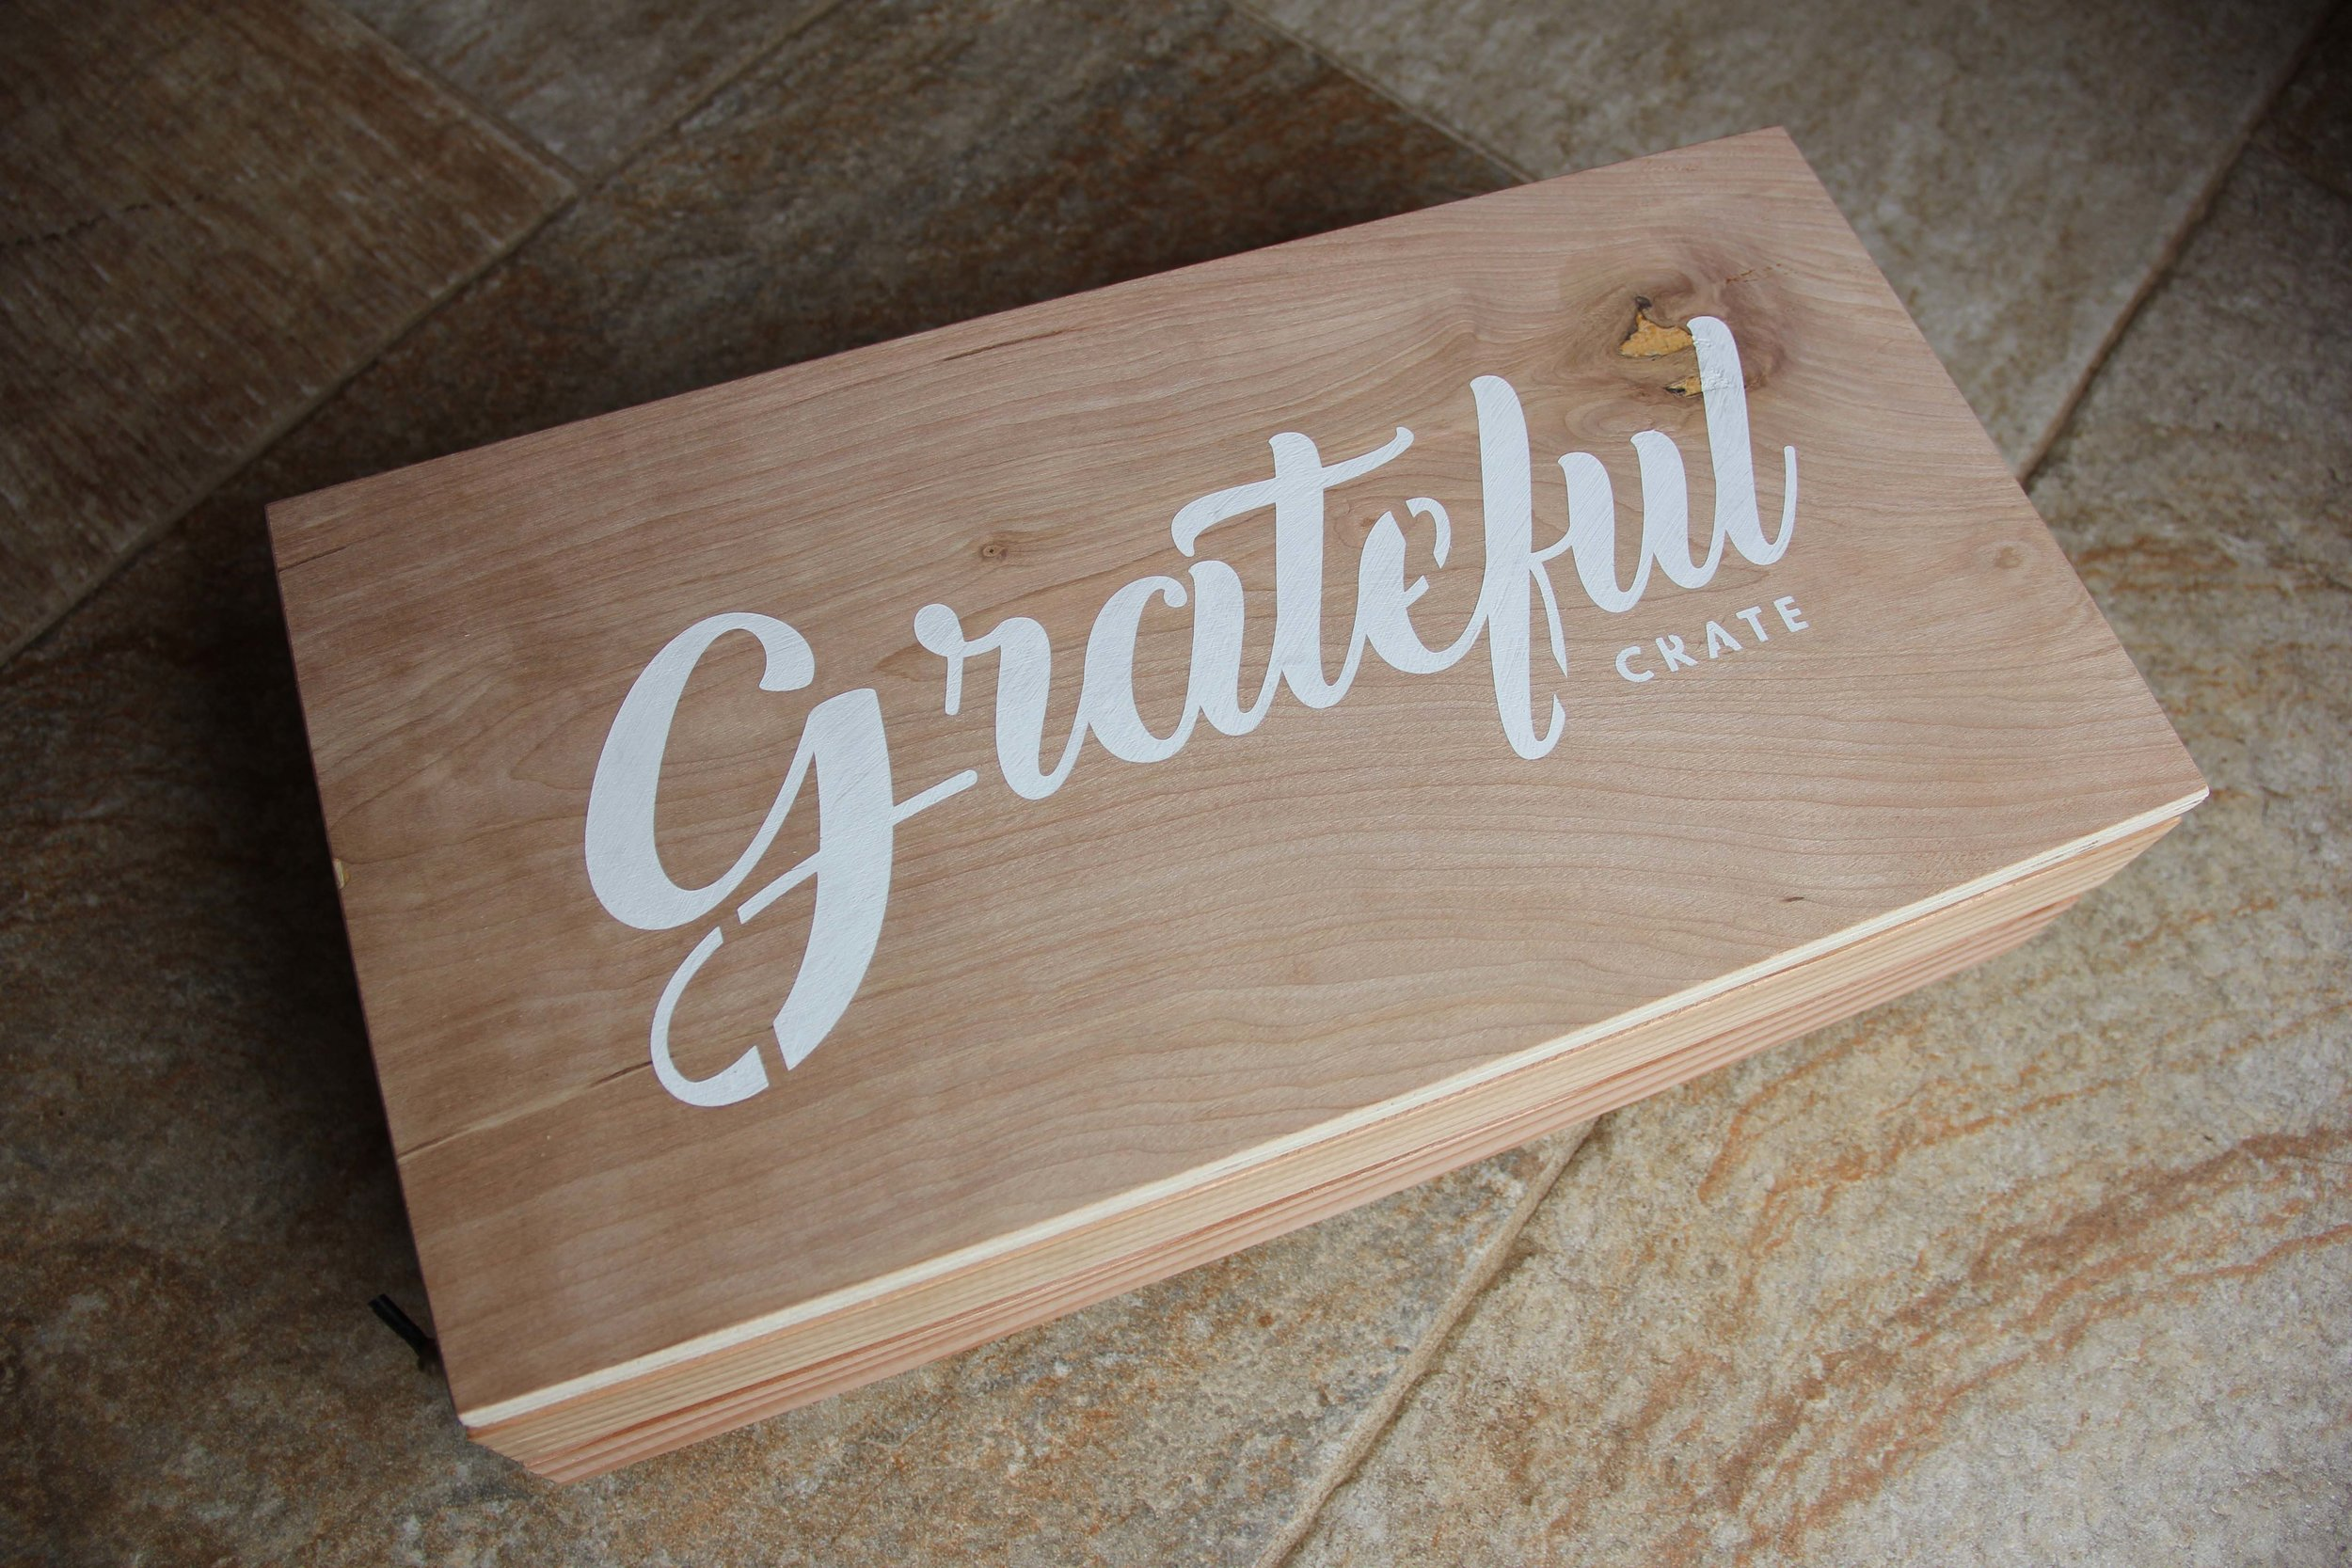 Made By Marissa > Handmade in Hawaii > Home > Large-Grateful Crate > 01.jpg